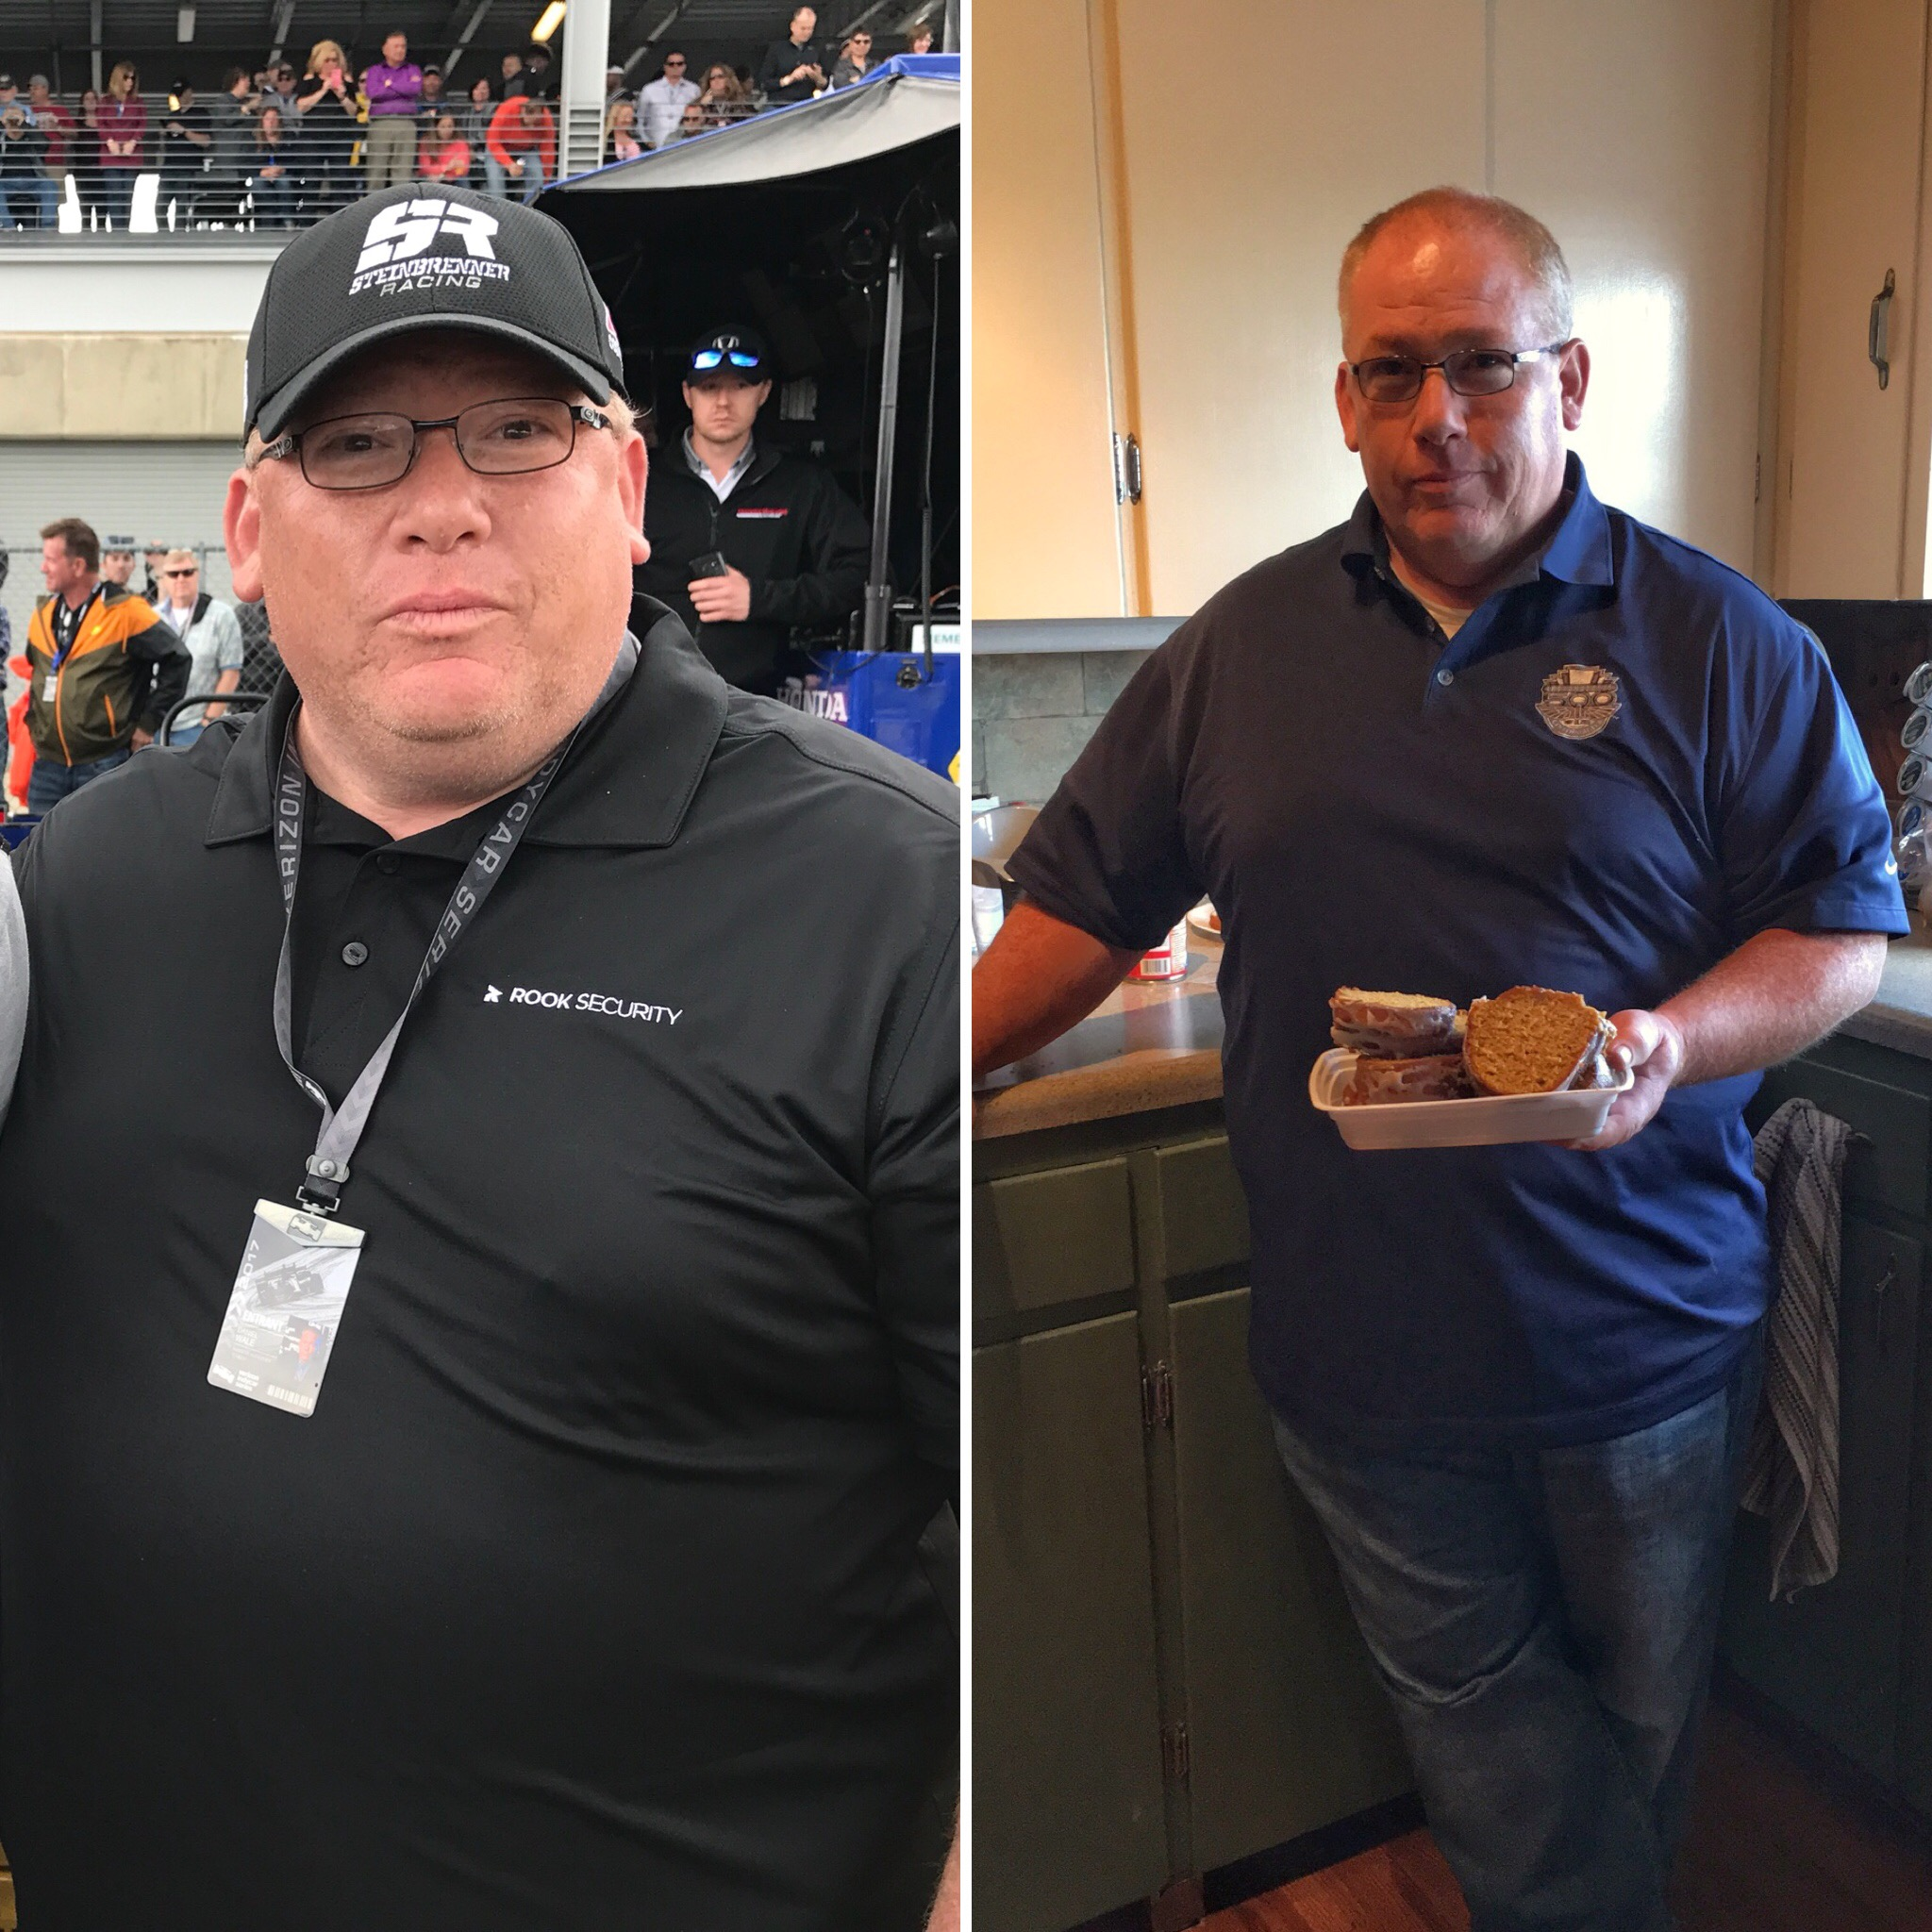 In 8 months:  Lost 100 lbs